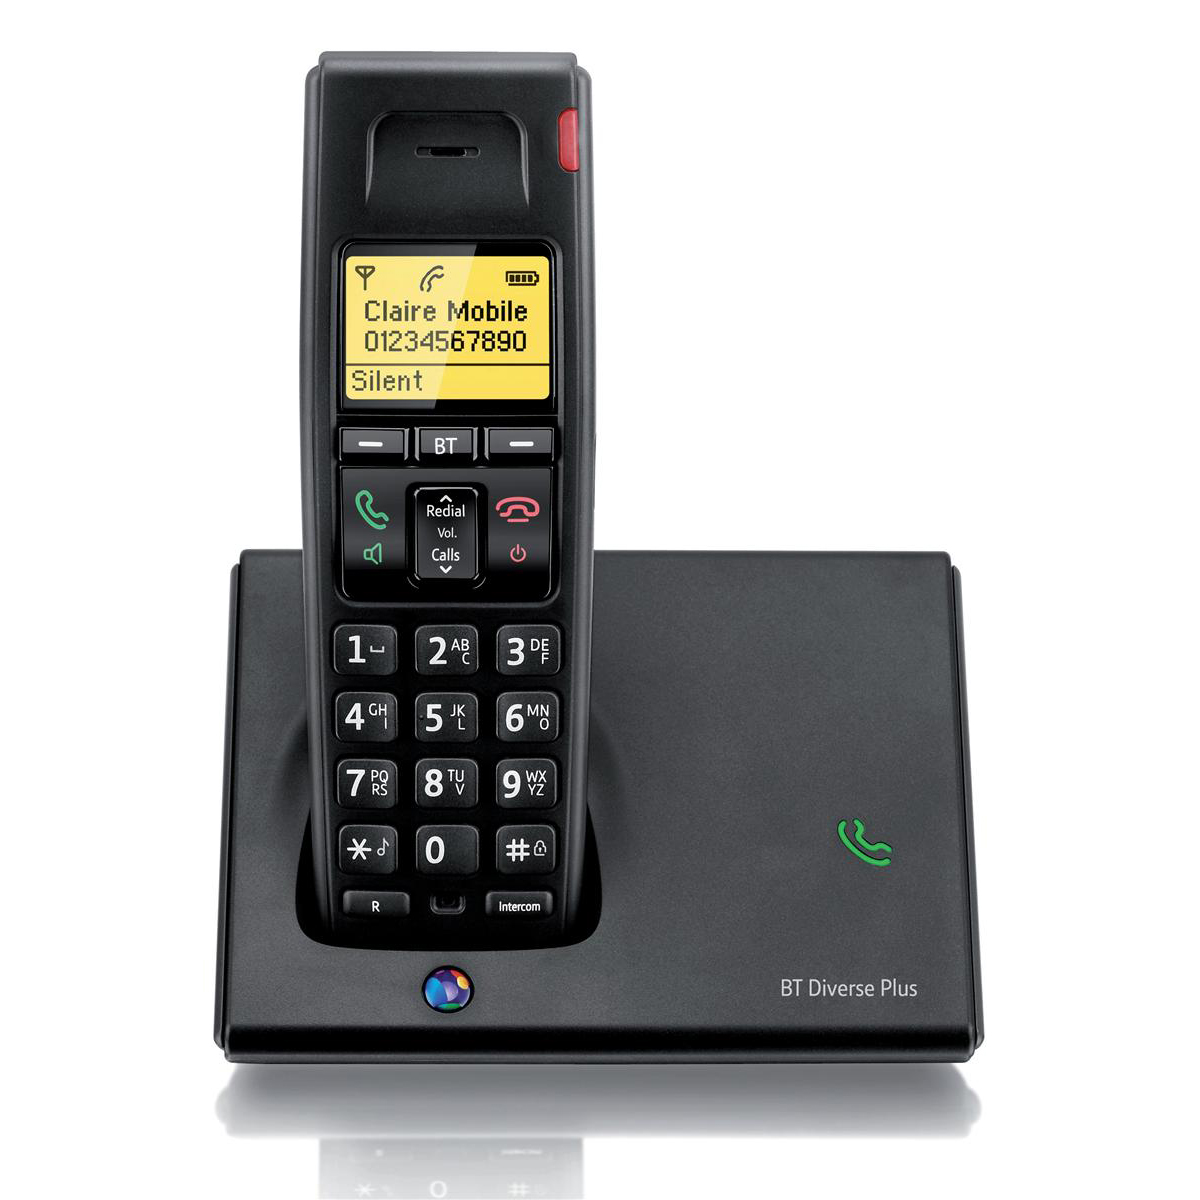 Image for BT Diverse 7110 Plus DECT Telephone Cordless GAP SMS 100-entry Directory 10 Redials Ref 060743